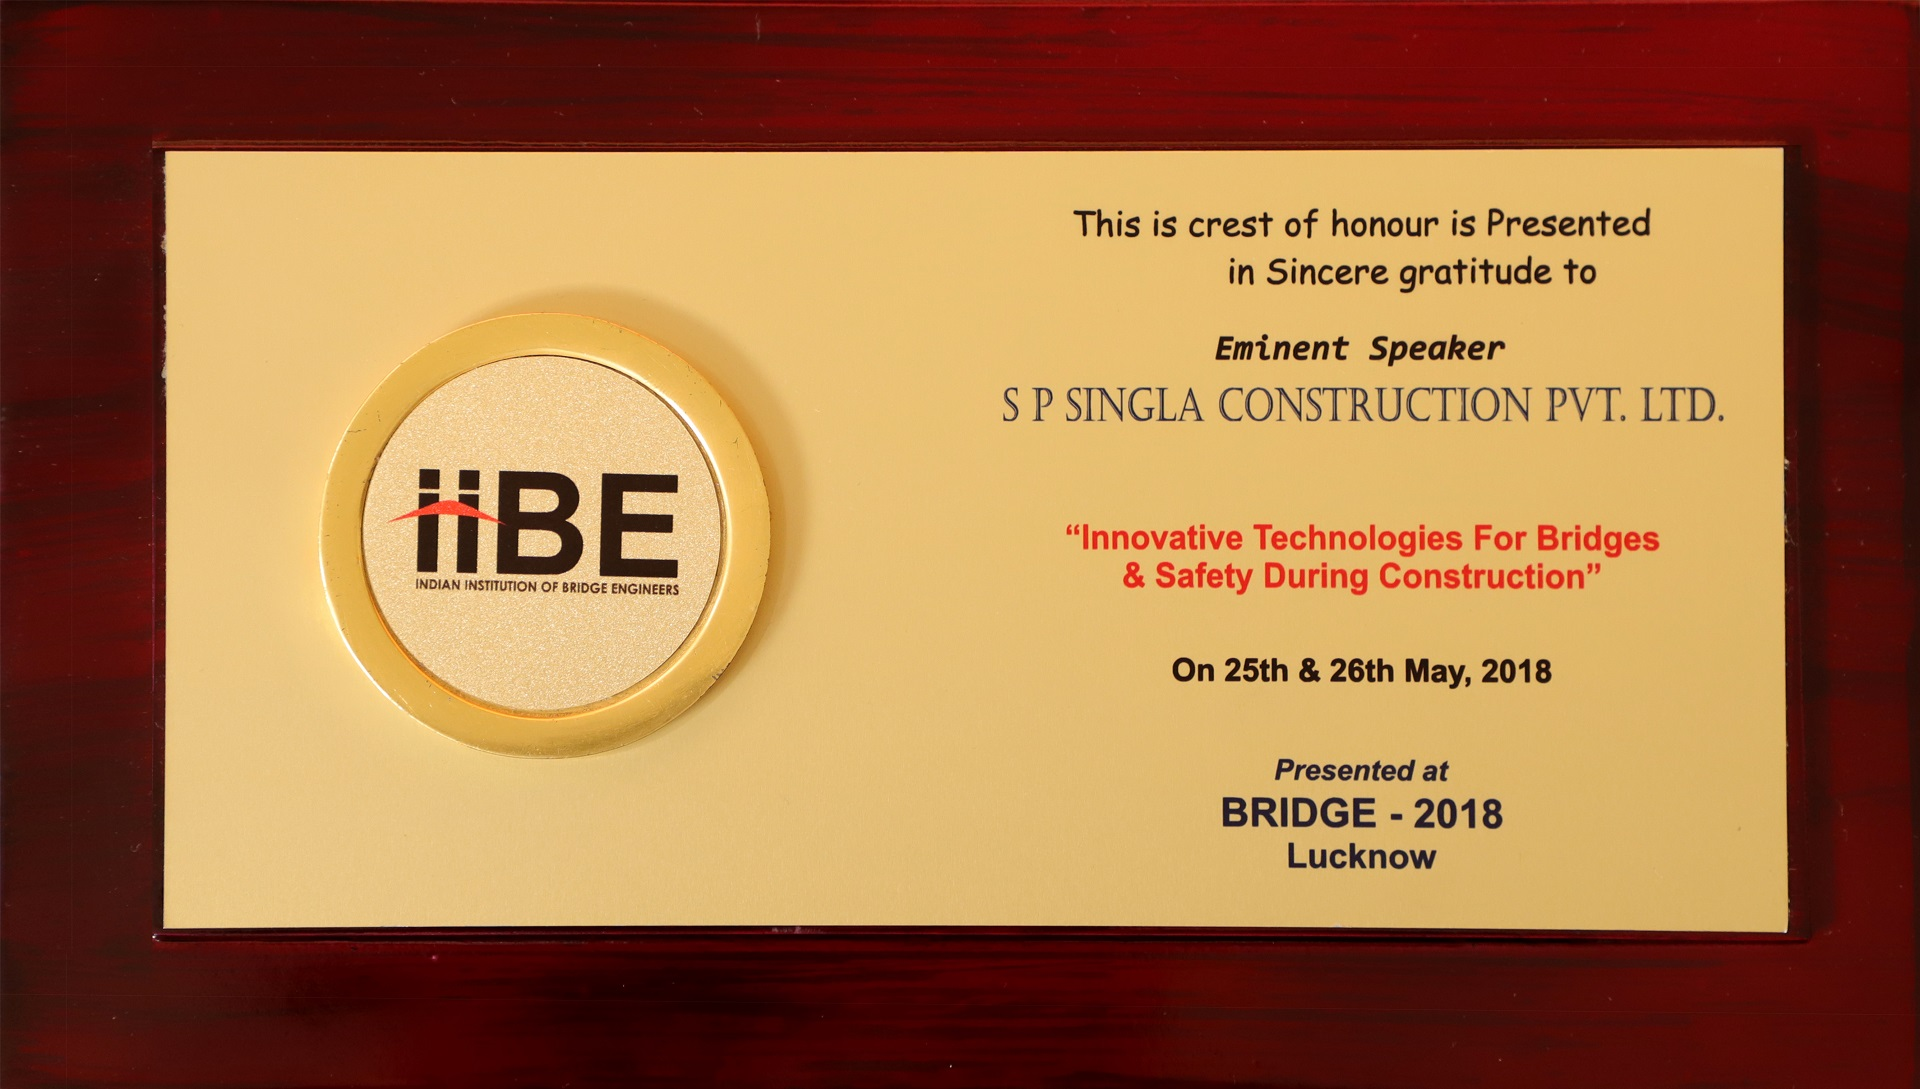 Citation conferred by Indian Institute of Bridge Engineers